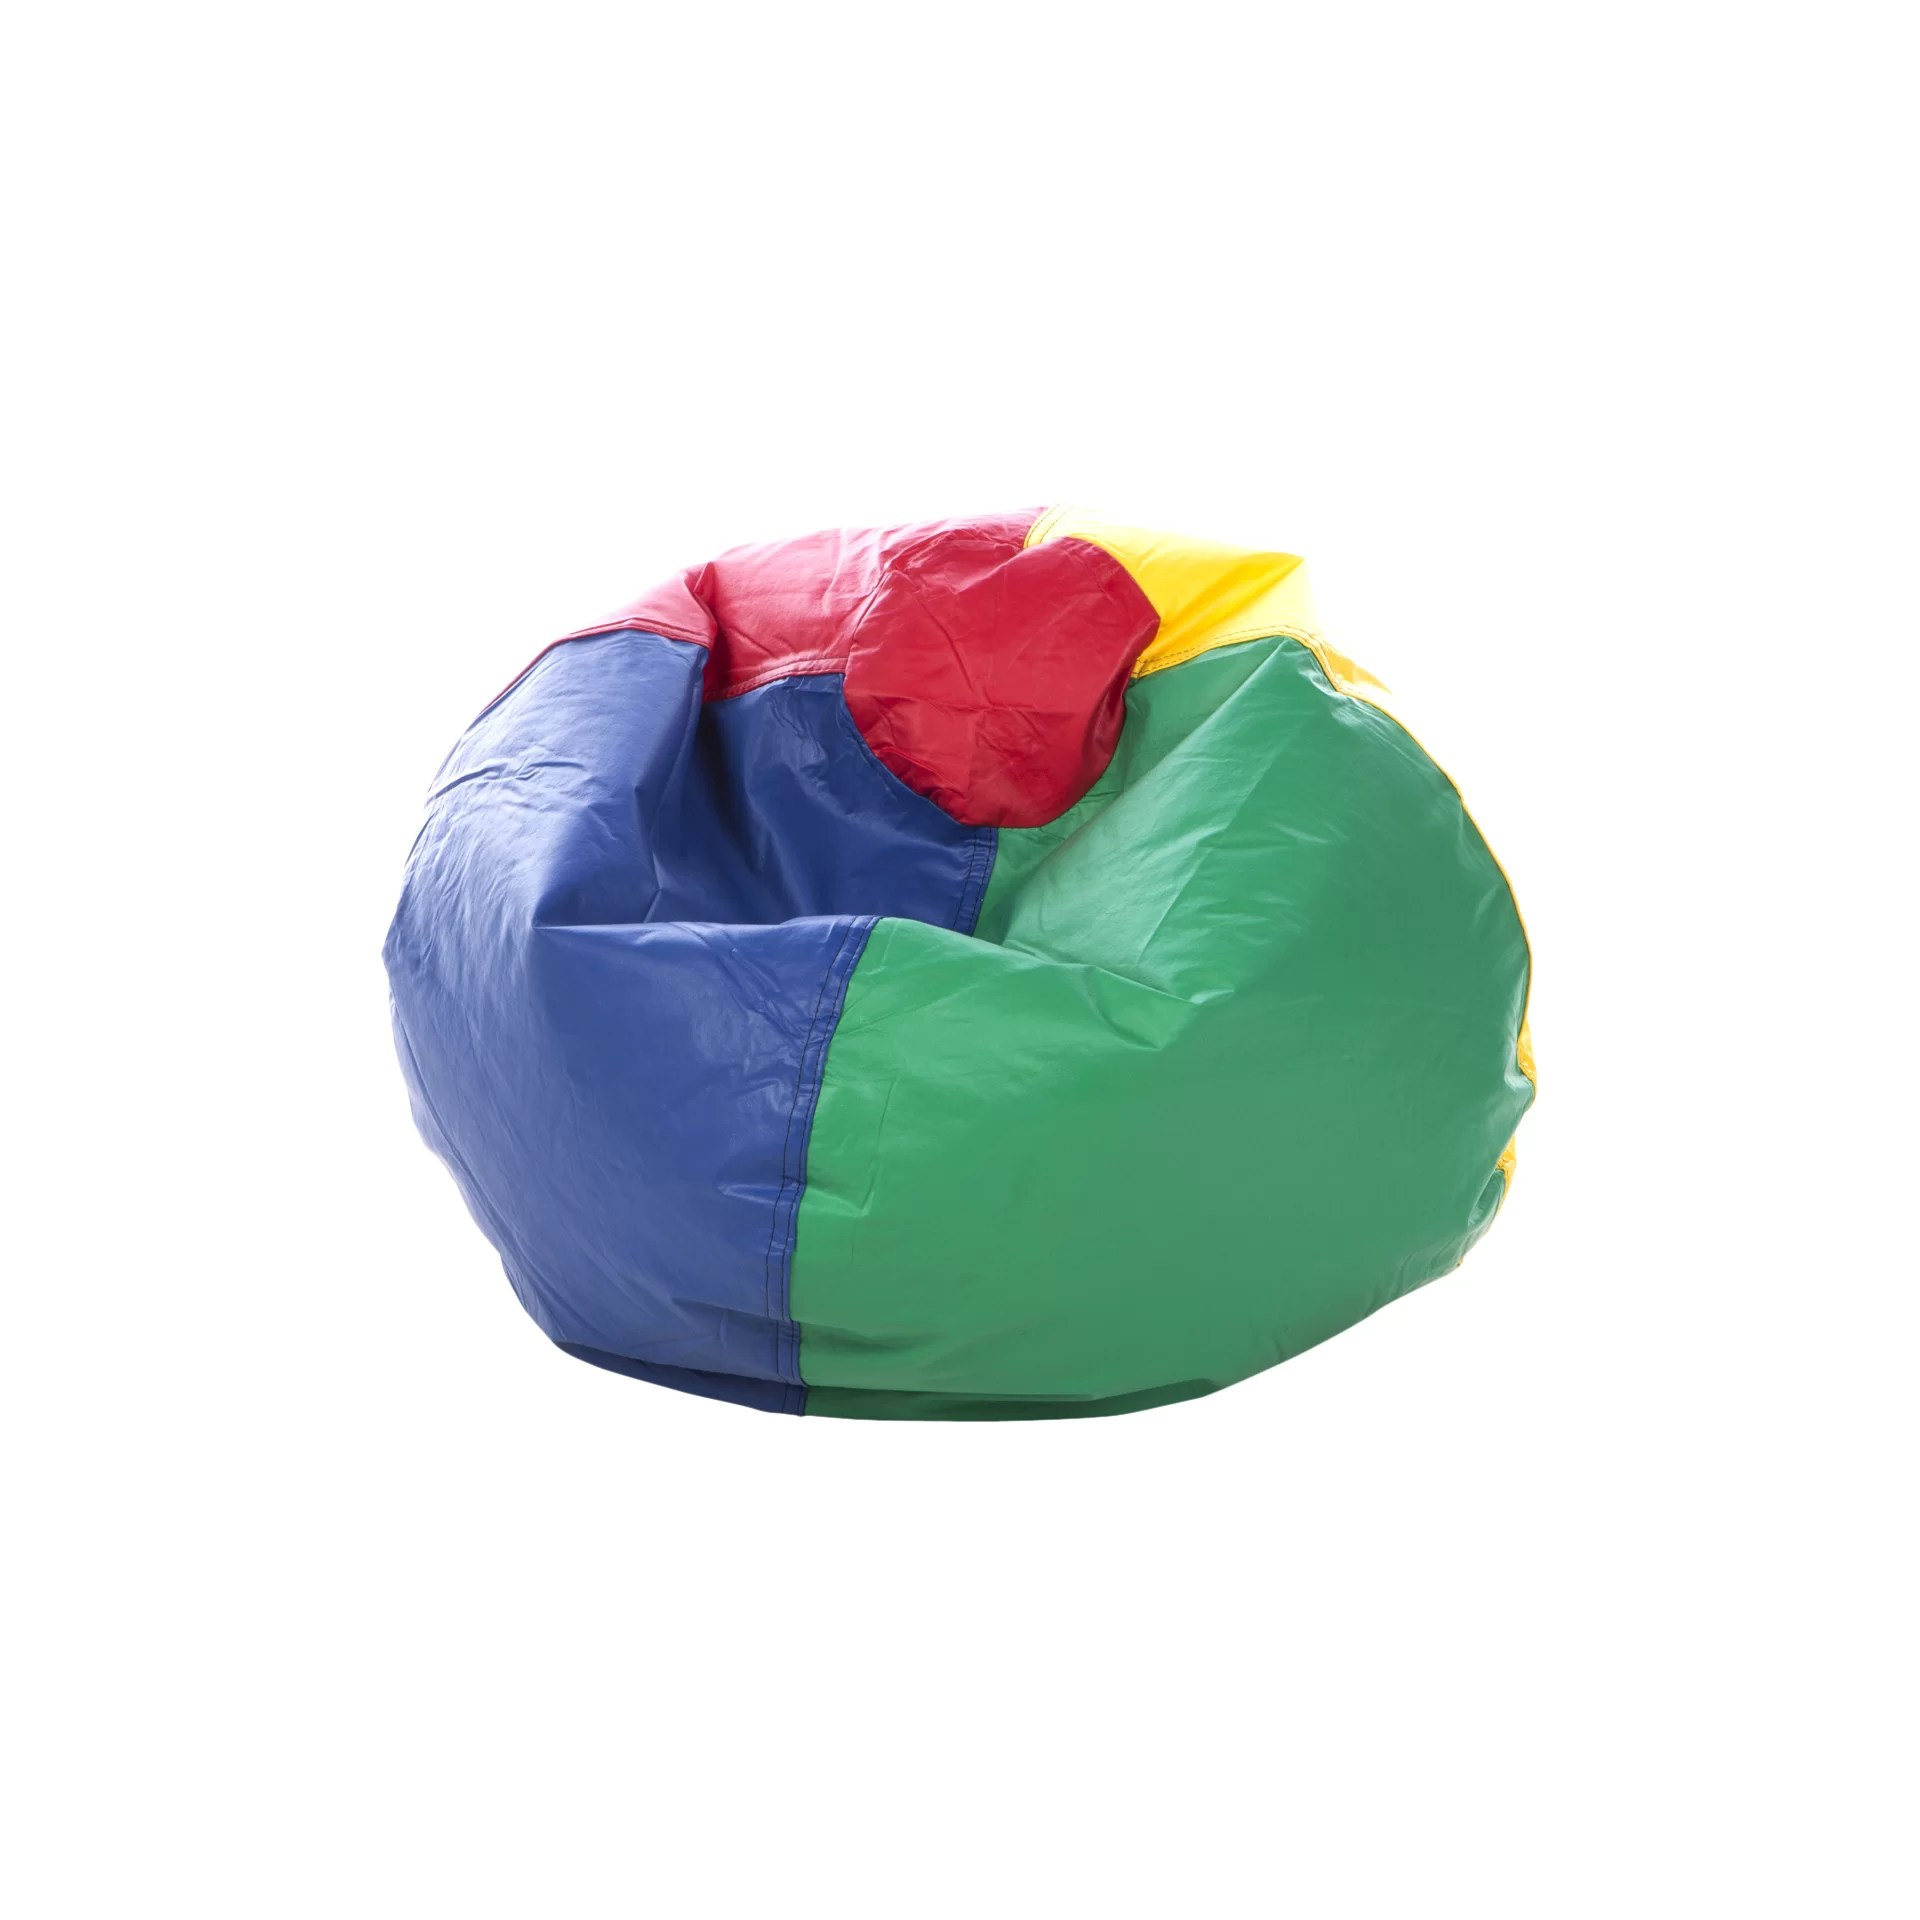 X Rocker Classic Multicolor Bean Bag Chair U0026 Reviews | Wayfair